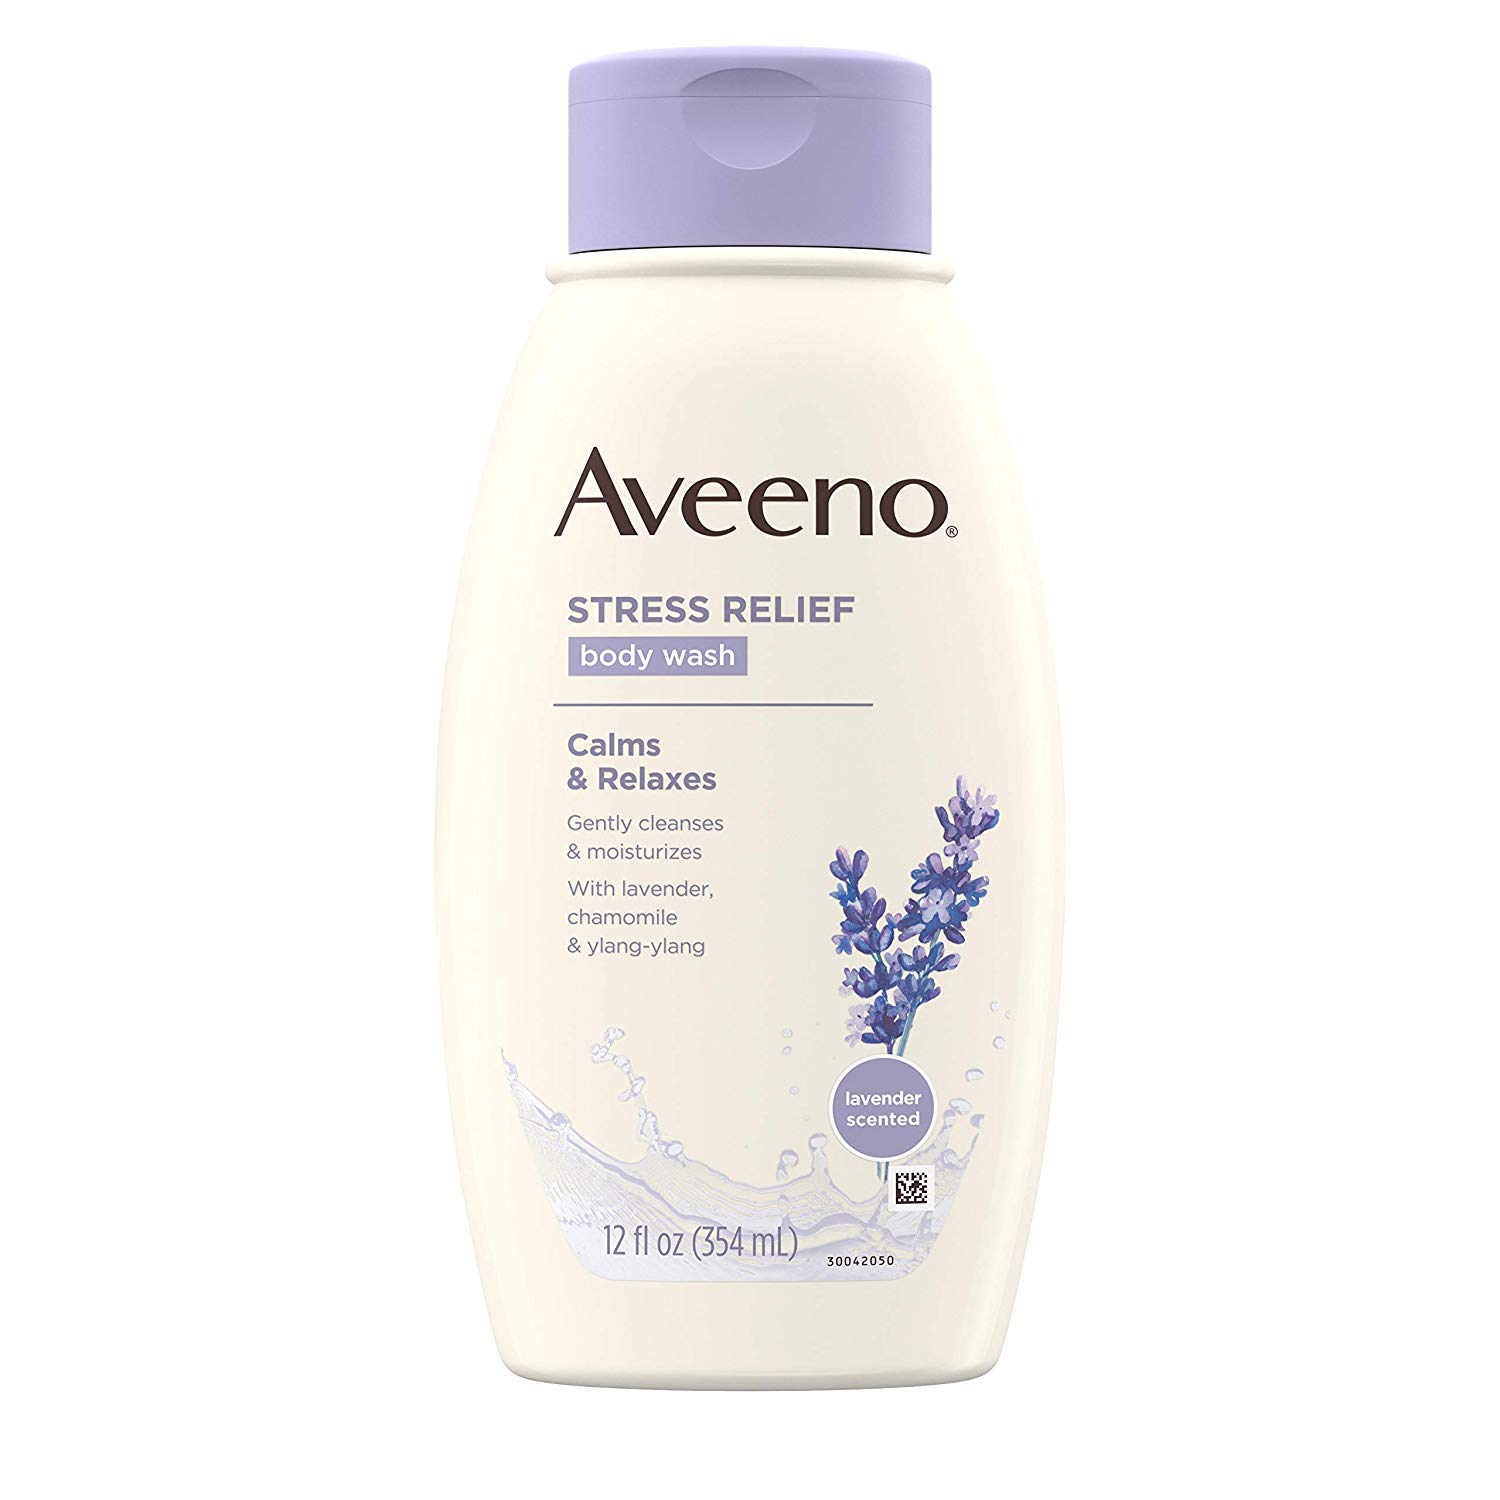 Aveeno Stress Relief Body Wash with Soothing Oat, Lavender, Chamomile & Ylang-Ylang Essential Oils, Hypoallergenic, Dye-Free & Soap-Free Calming Body Wash gentle on Sensitive Skin, 12 fl. oz (5 Pack)